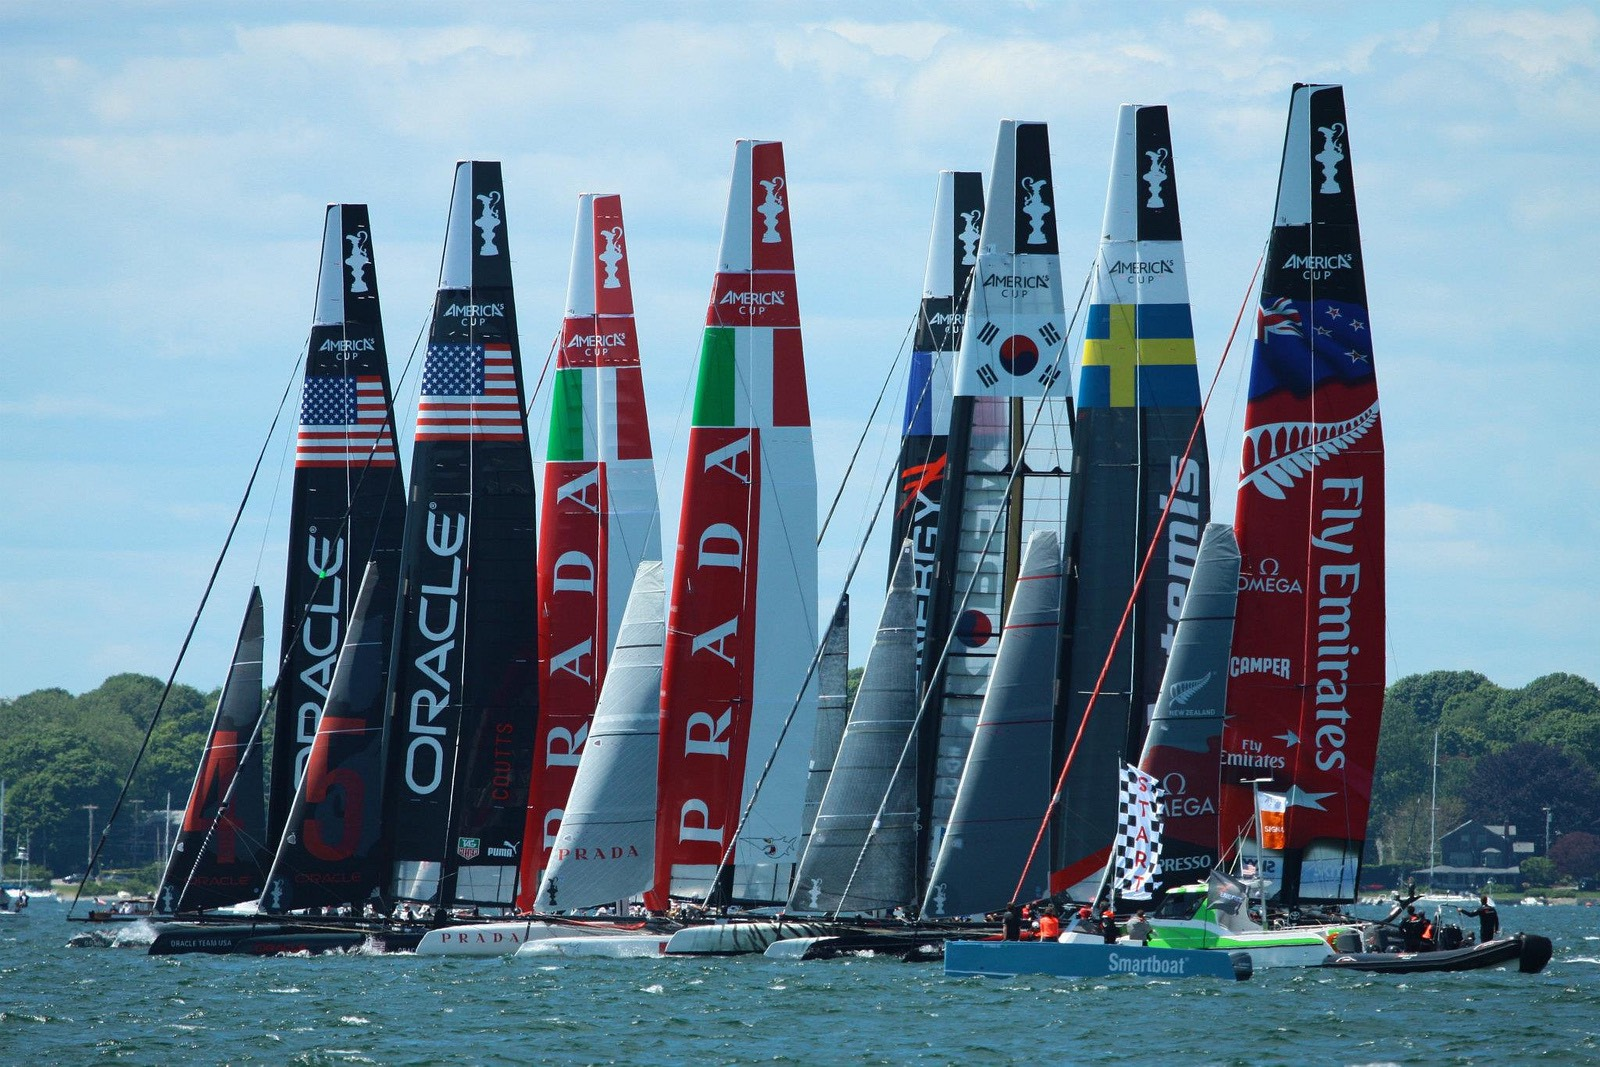 The reaching start in the Americas Cup foiling catamarans has replaced the upwind monohull start